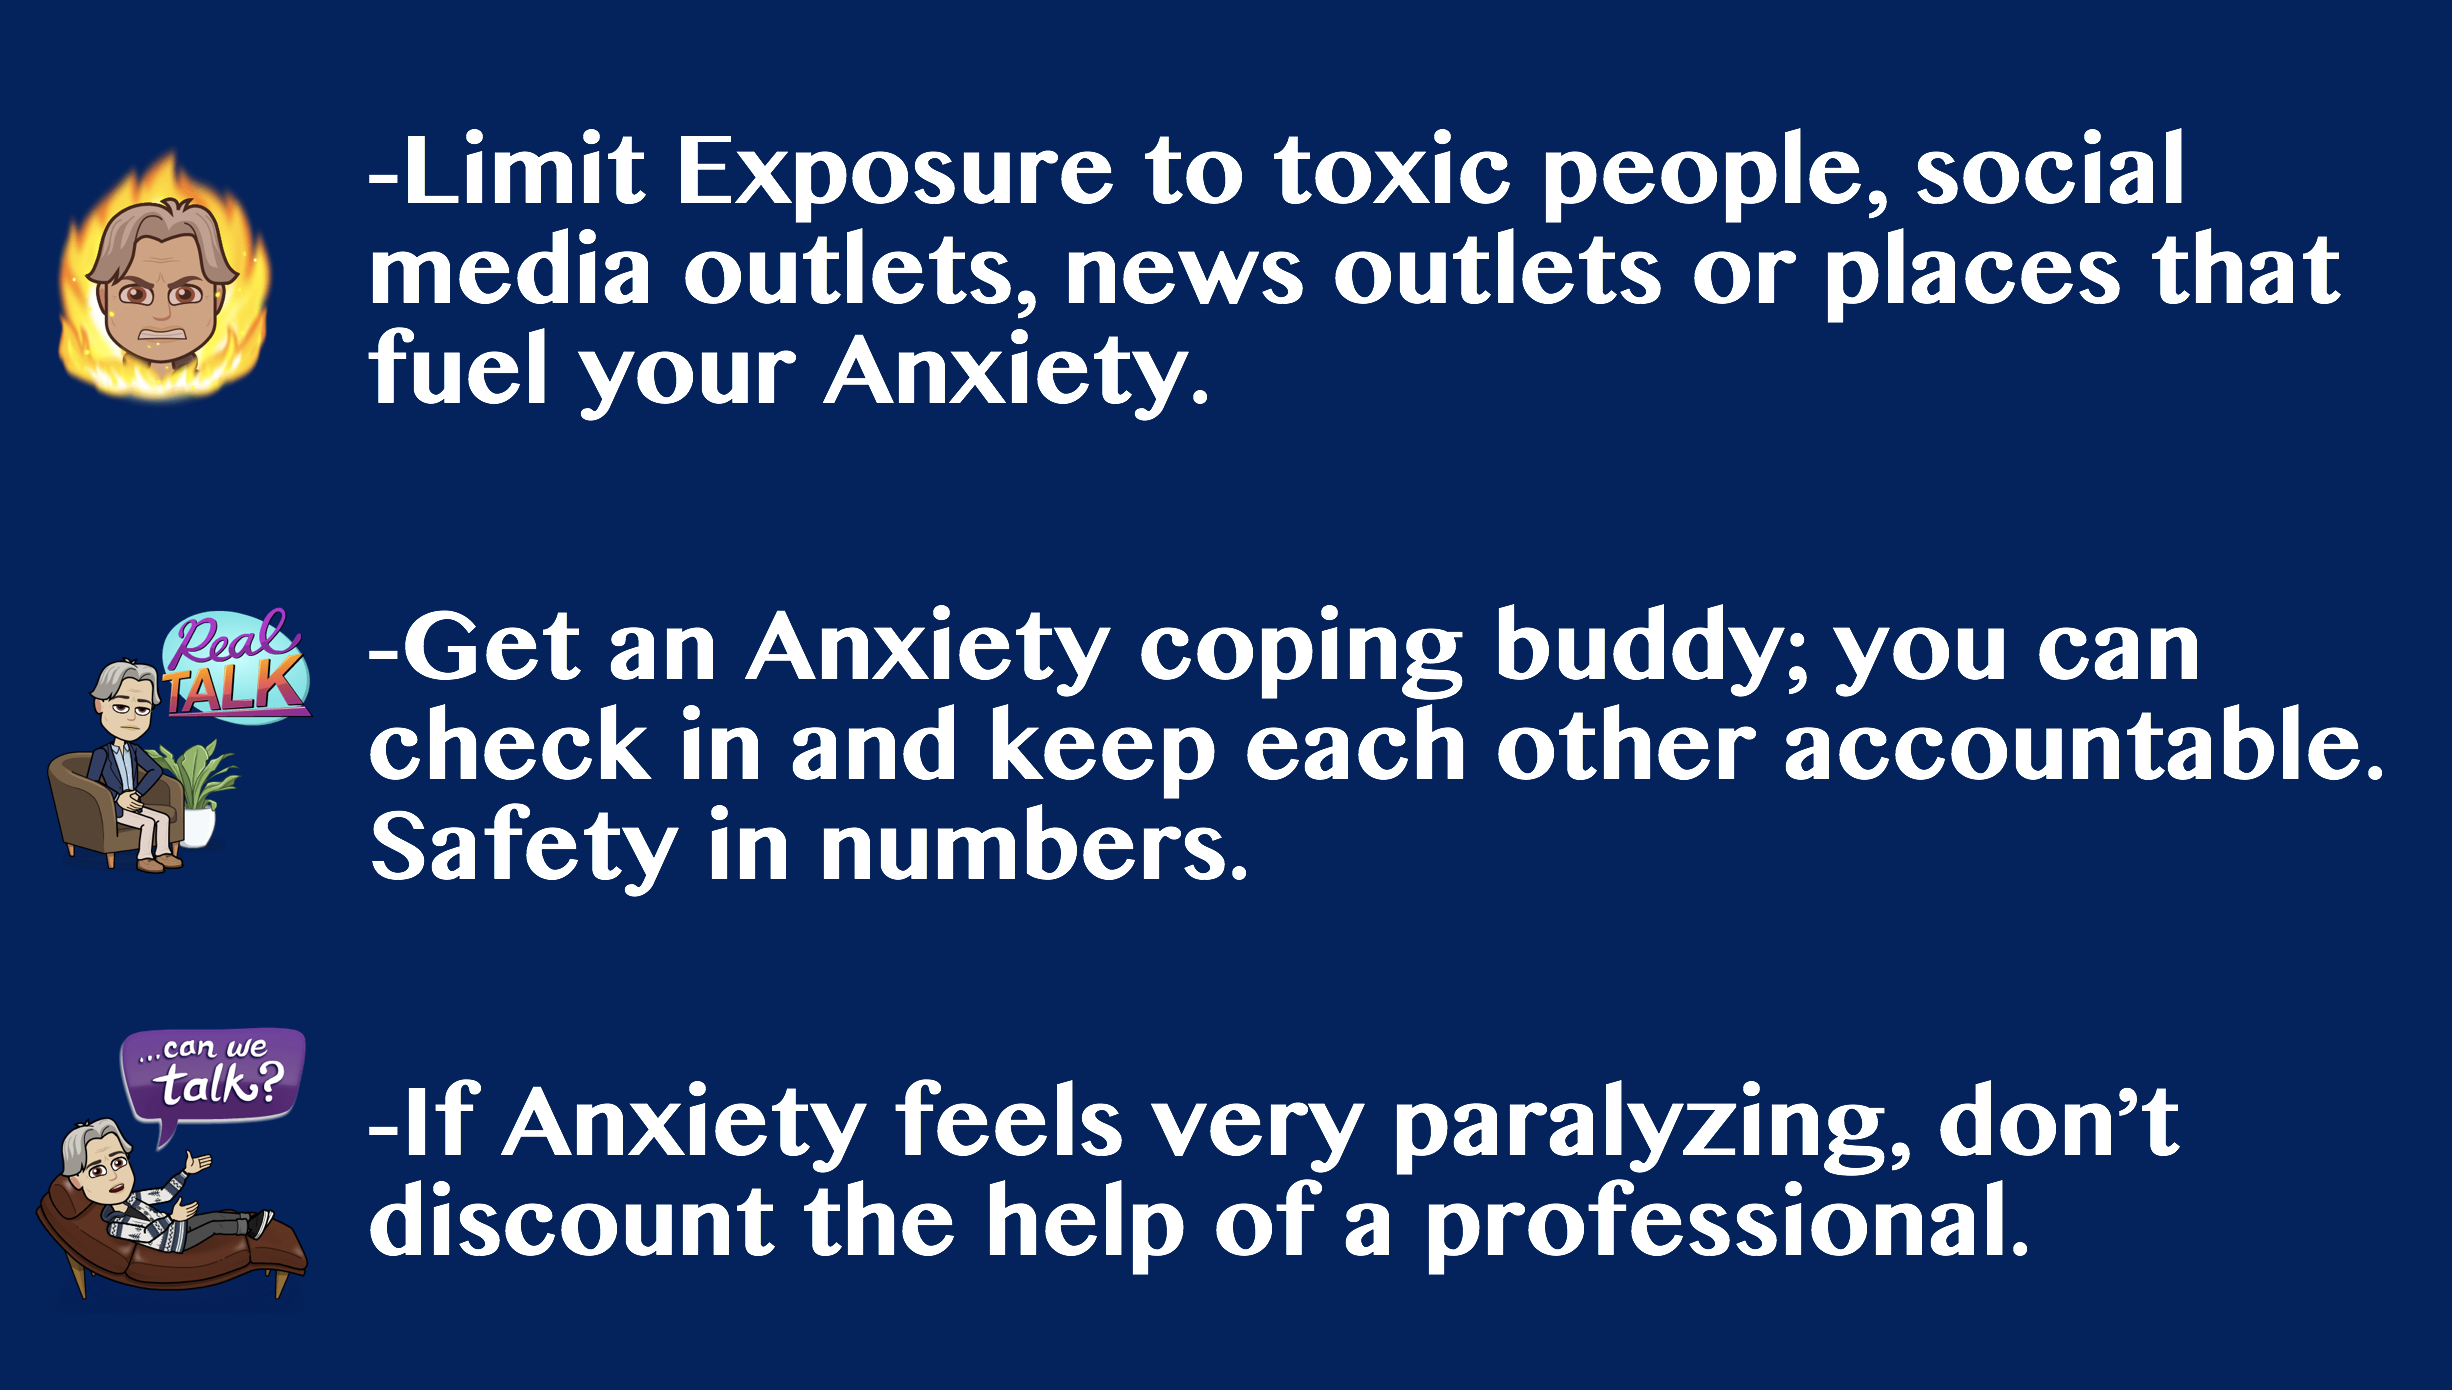 These 3 might seem very basic or obvious -- but mindfully consider their place in your routine. An anxiety coping buddy isn't someone you have a bitch fest with. It's someone who knows you well and can keep you on track when you feel like you're going off.